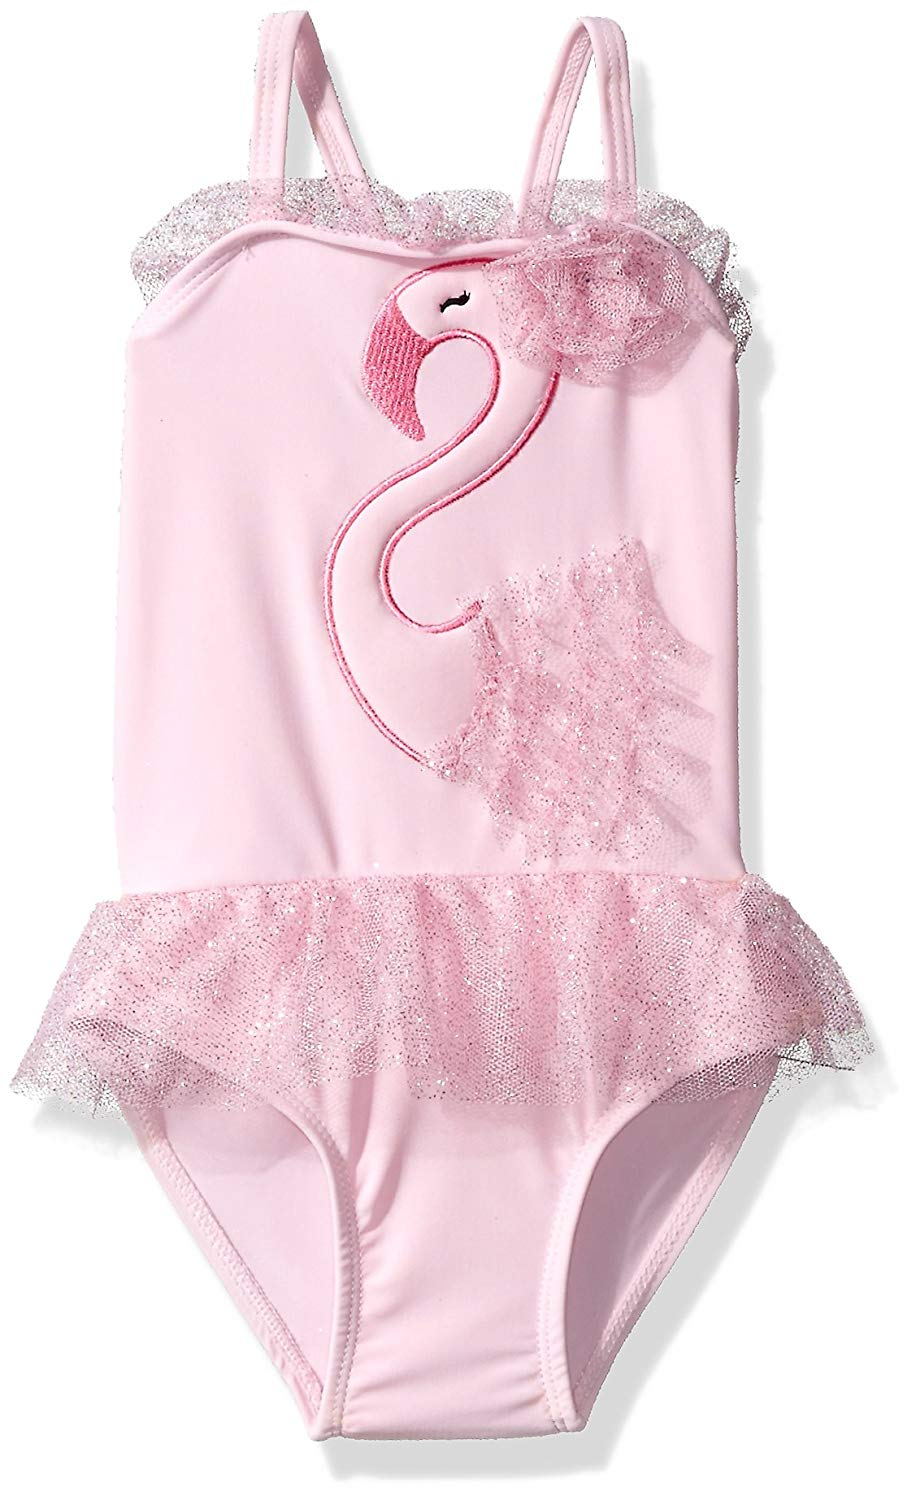 efb4a6f885 Cheap Toddler Swimsuit Girls, find Toddler Swimsuit Girls deals on ...